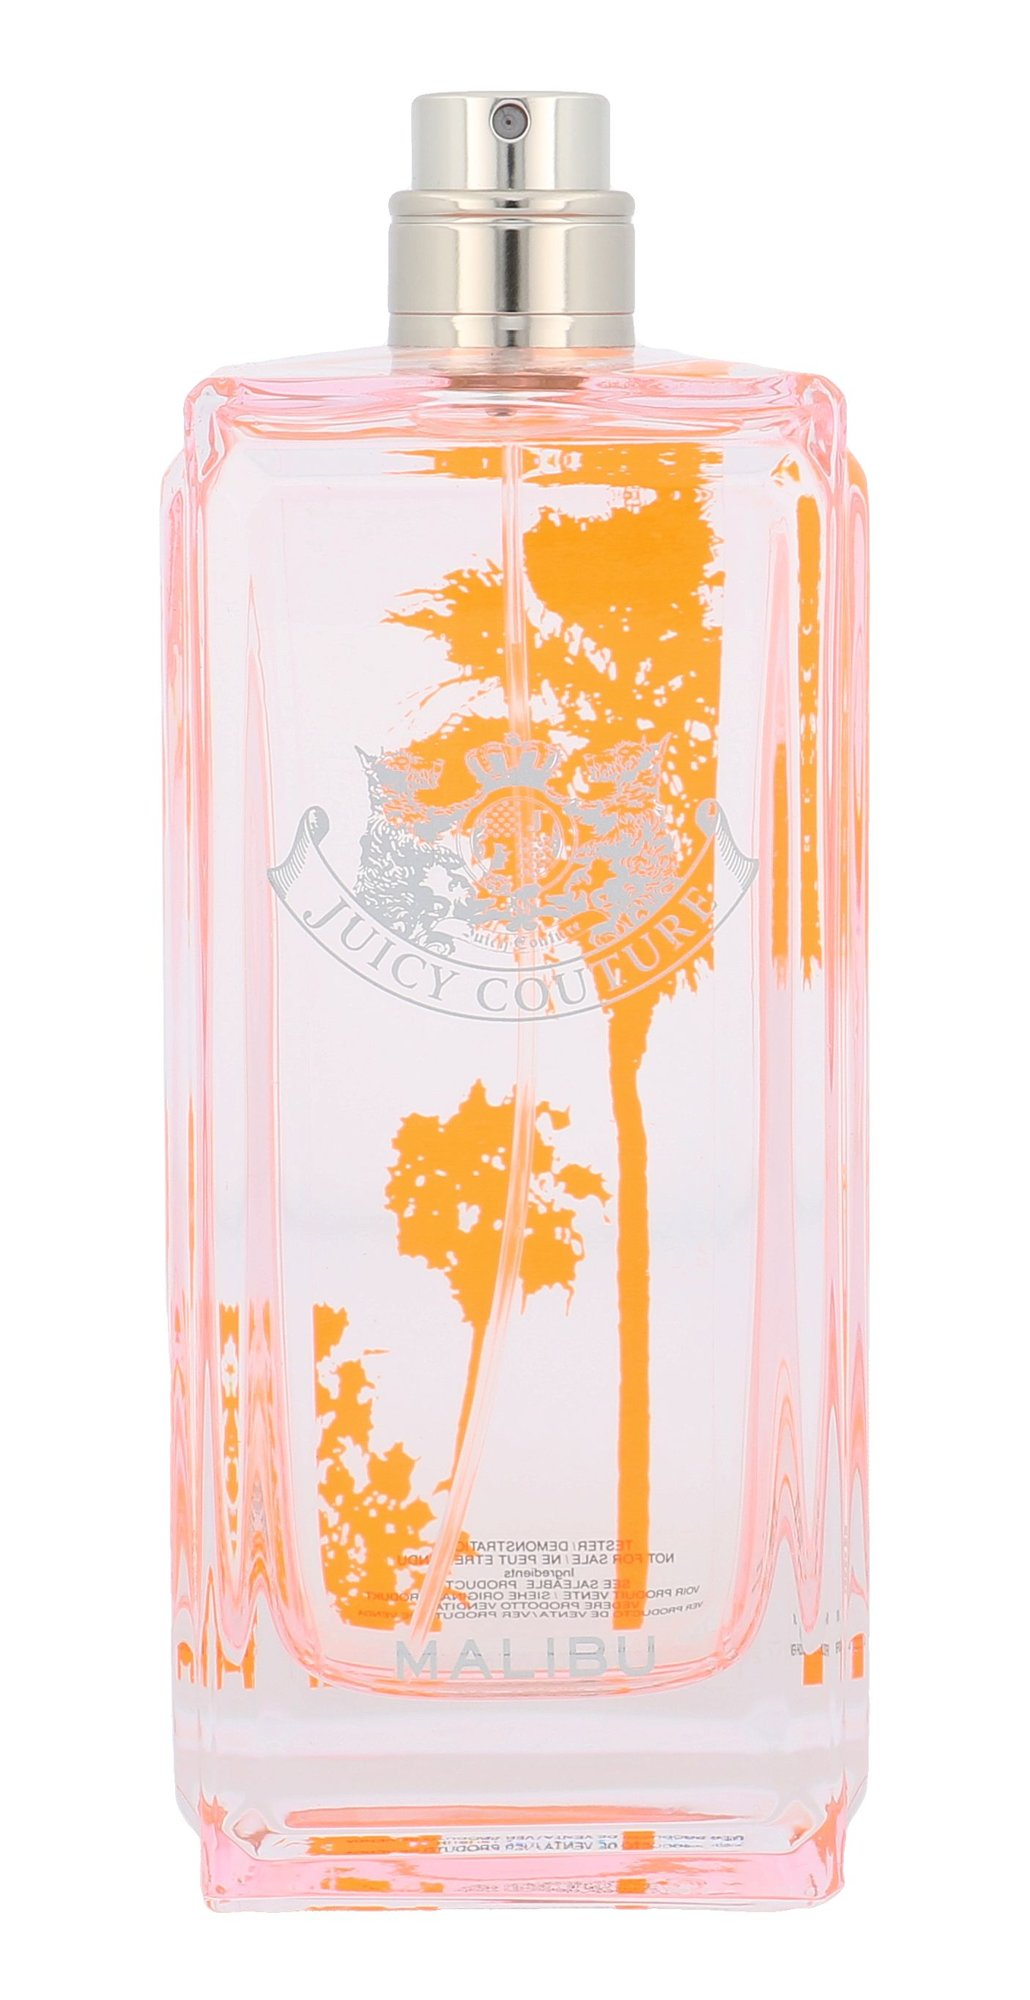 Juicy Couture Juicy Couture Malibu EDT 150ml